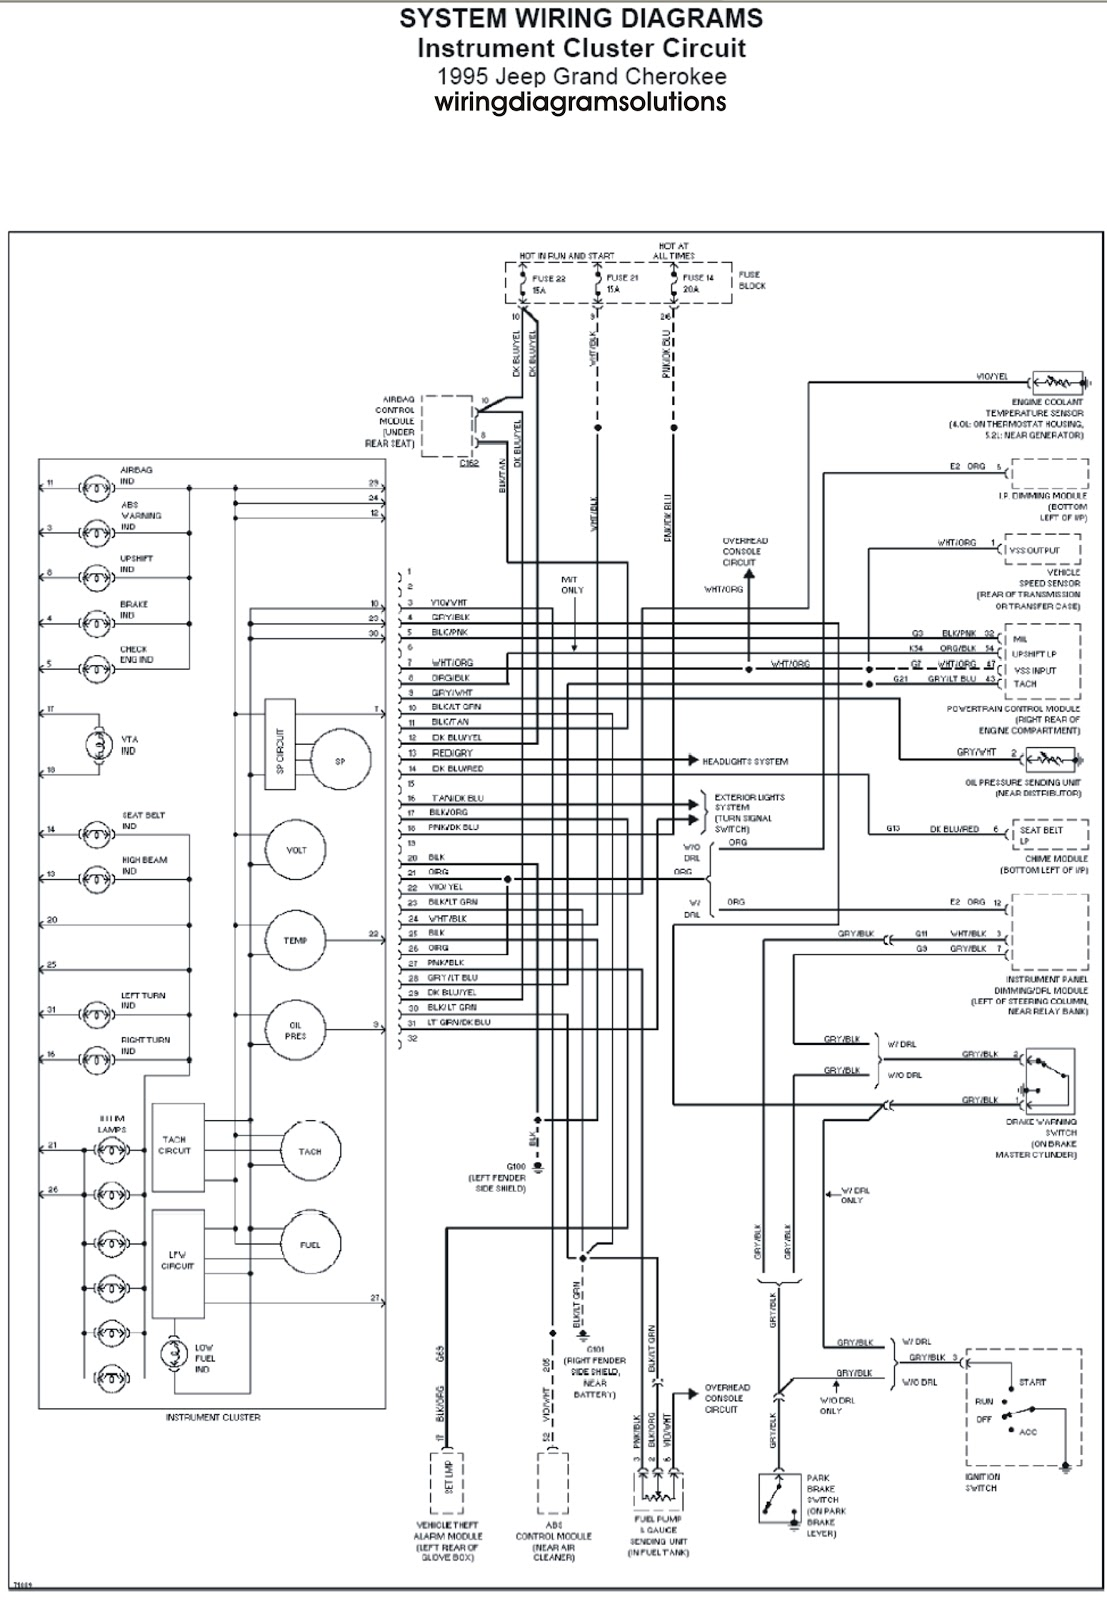 jeep cherokee wiring schematic today diagram databaseElectrical Wiring Diagram 1999 Jeep Cherokee #7